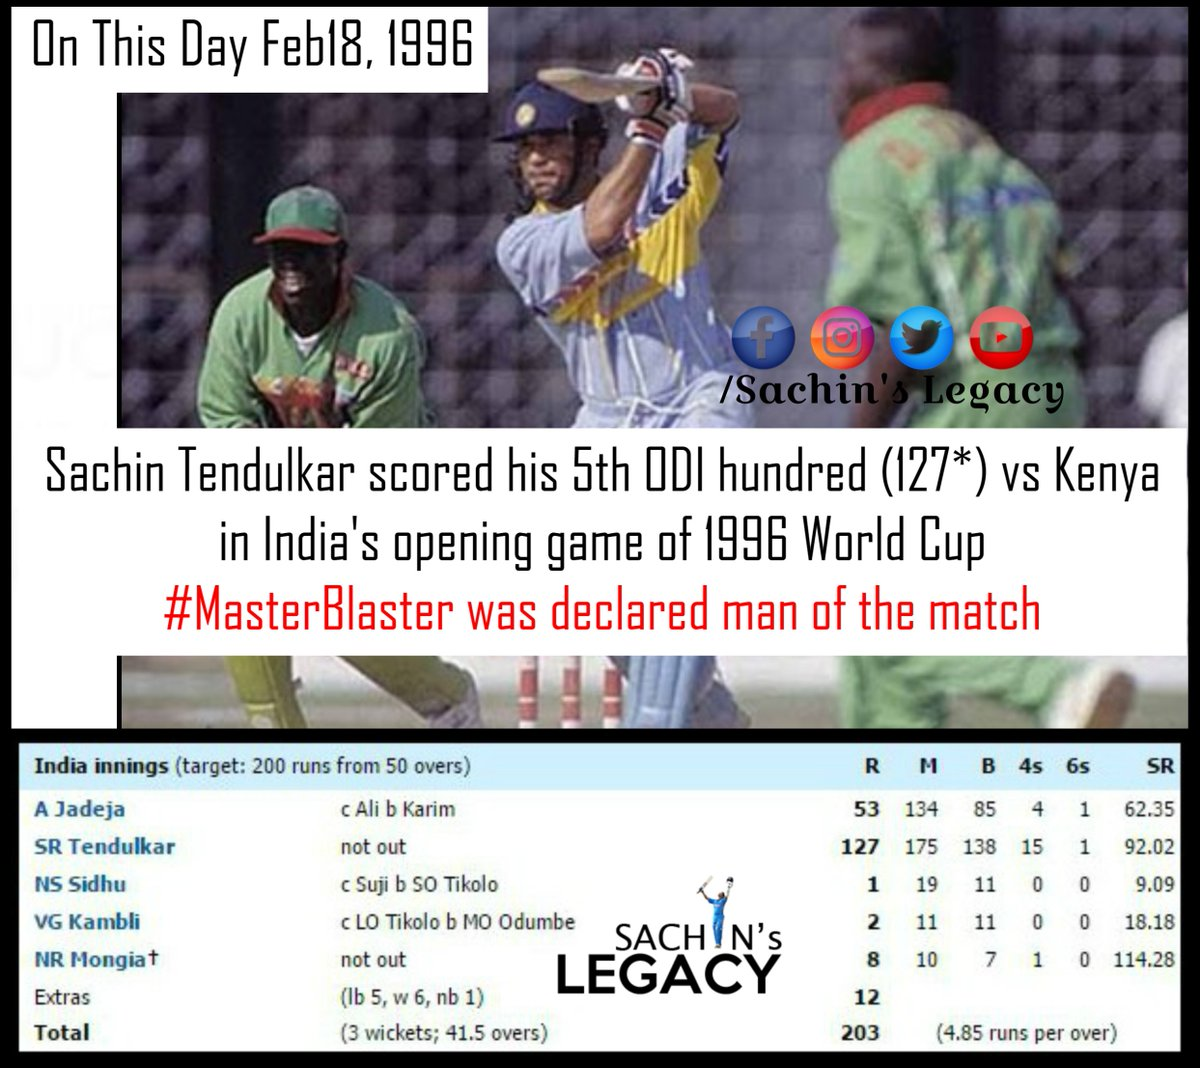 #OnThisDay in 1996 #India starts their #worldcup campaign with a convincing win over #Kenya courtesy of some brilliant batting display by the #Maestro who scored his 5th ODI hundred and declared man of the match  -A post from @sachin_rt pakistani fan page